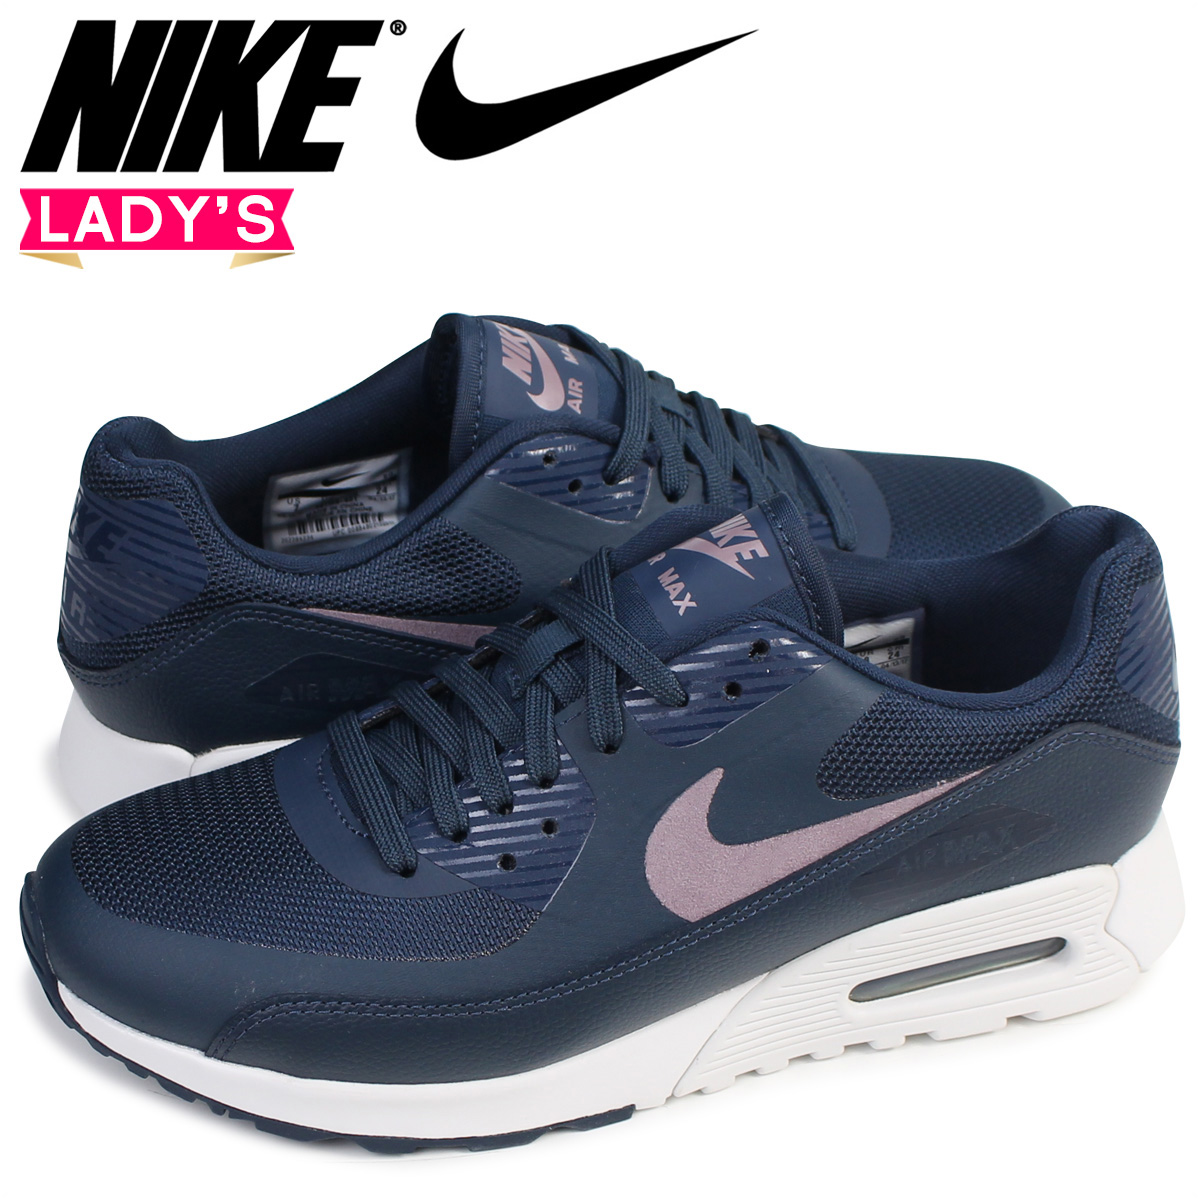 c9a0e9427542 Nike NIKE Air Max 90 ultra Lady s sneakers WMNS AIR MAX 90 ULTRA 2.0  881